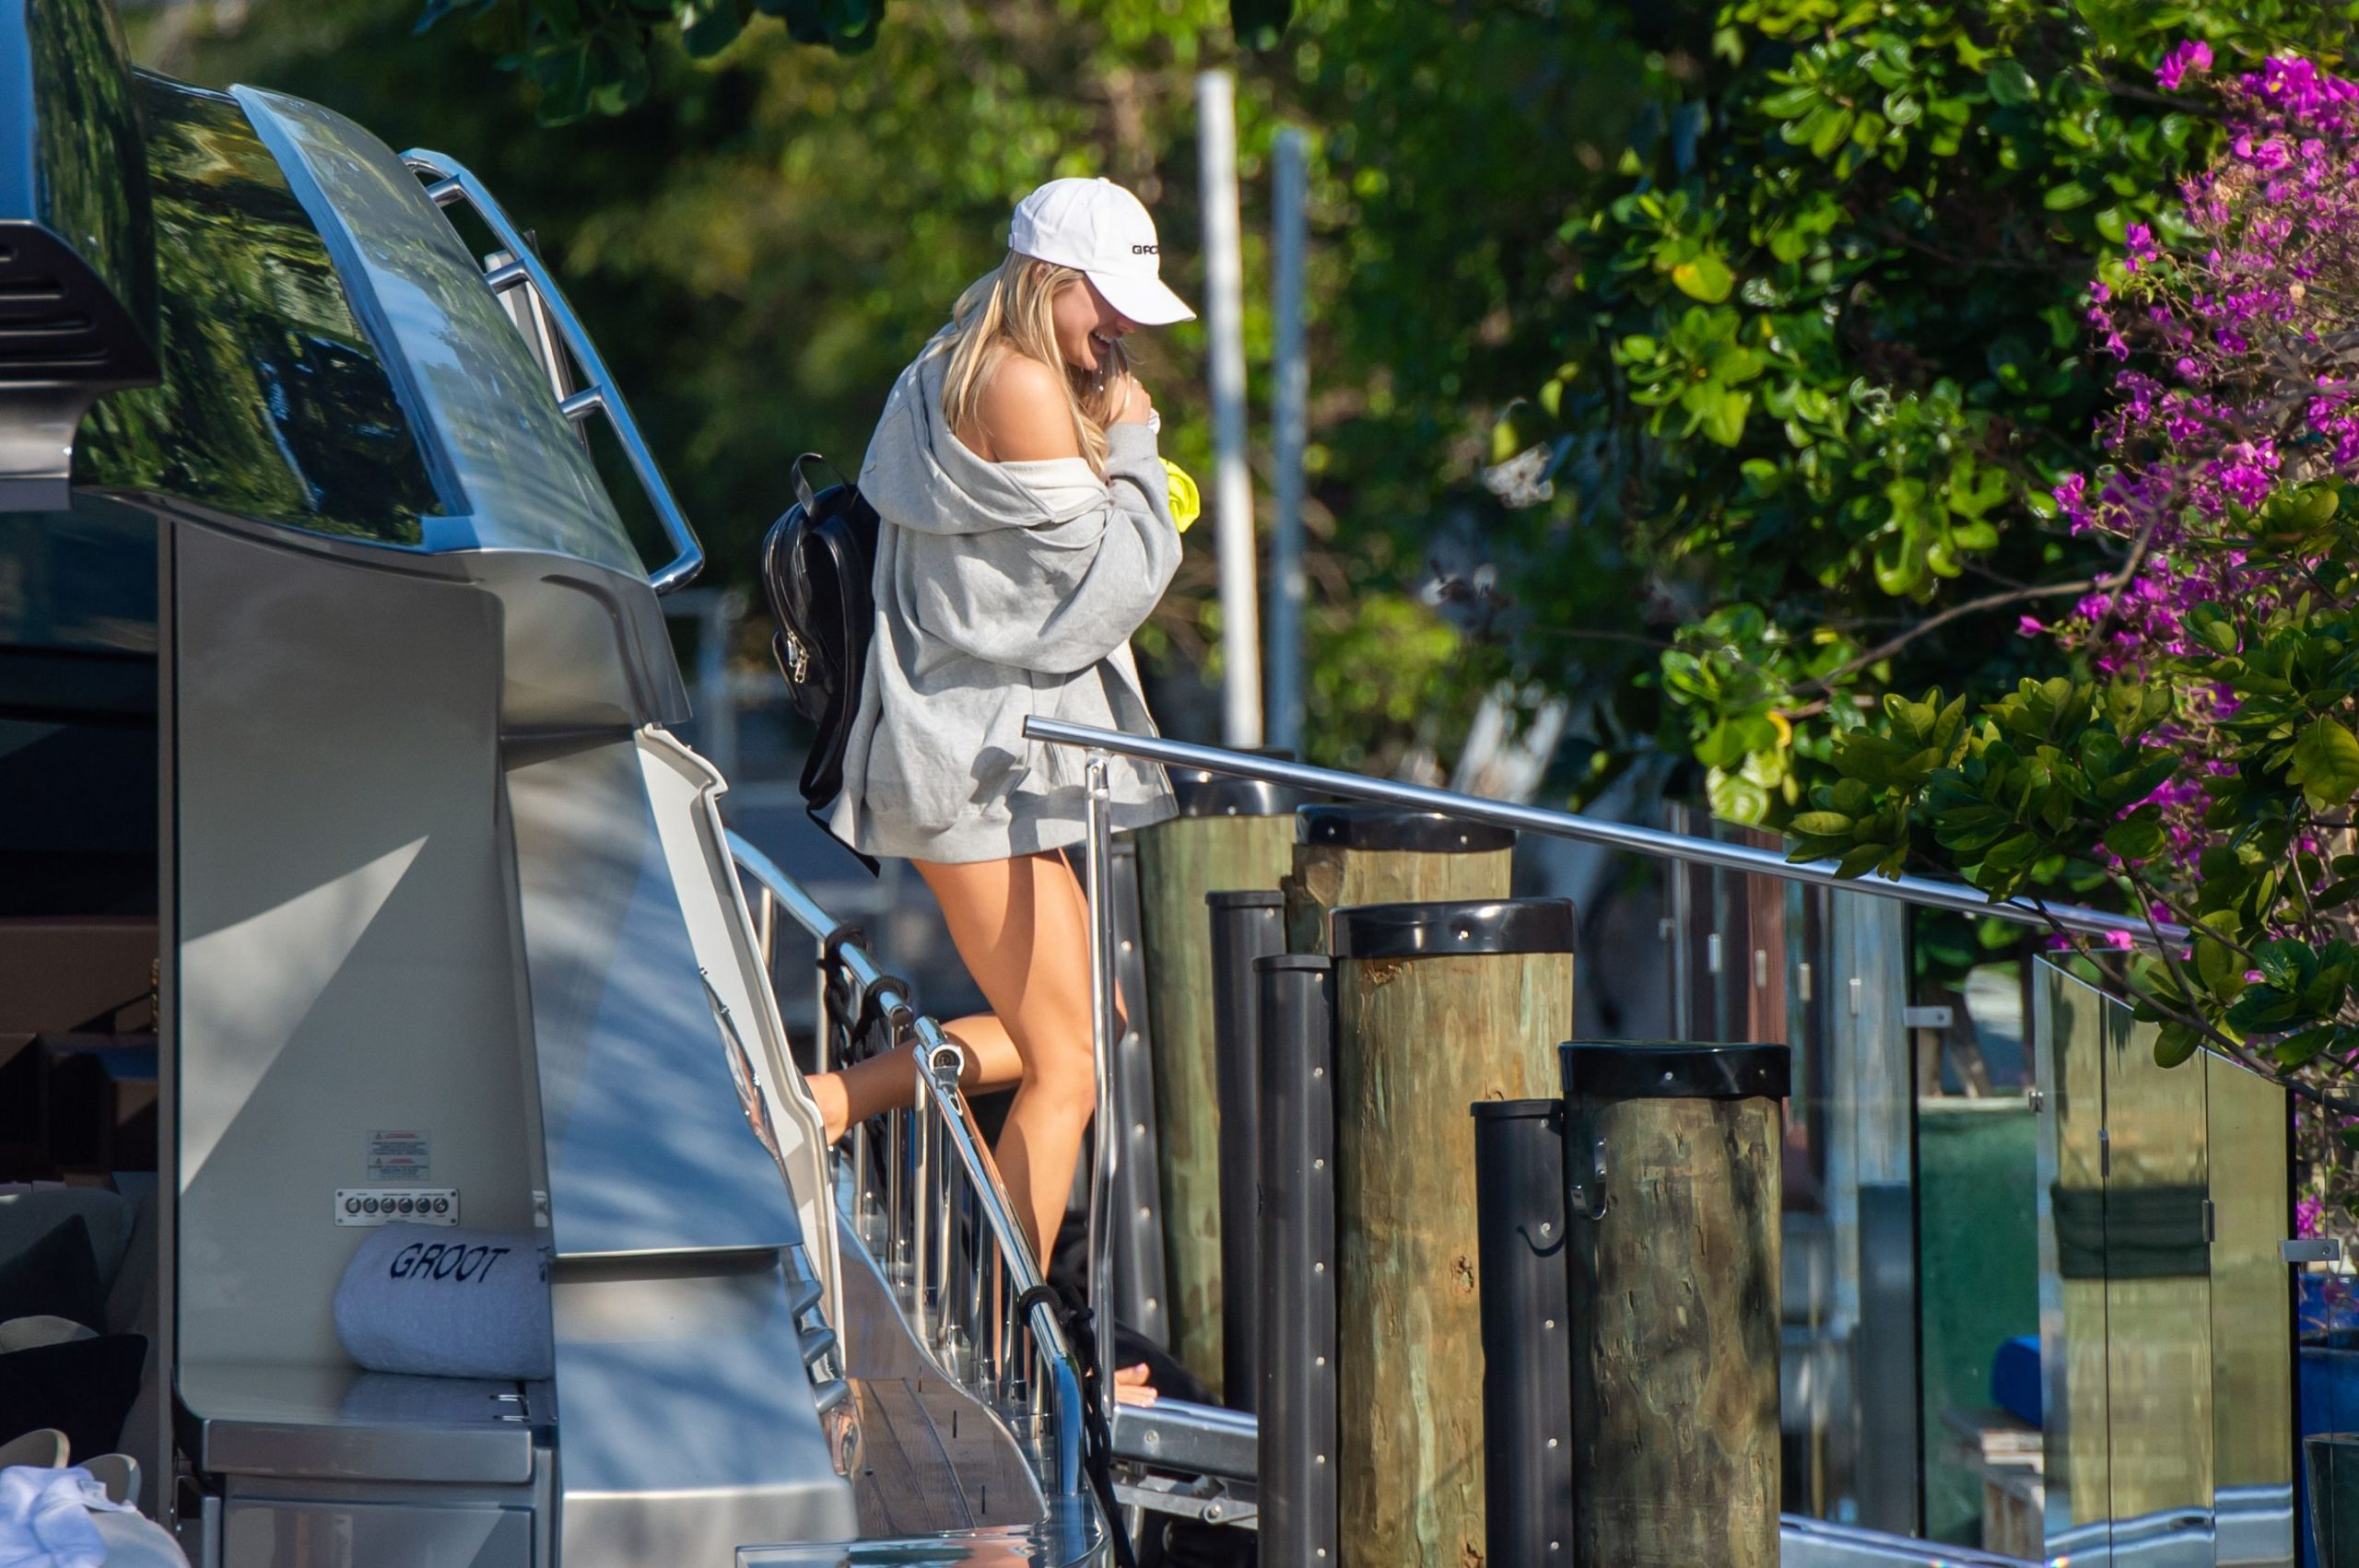 Model Josie Canseco Shows Off Her Curves In Miami 0011